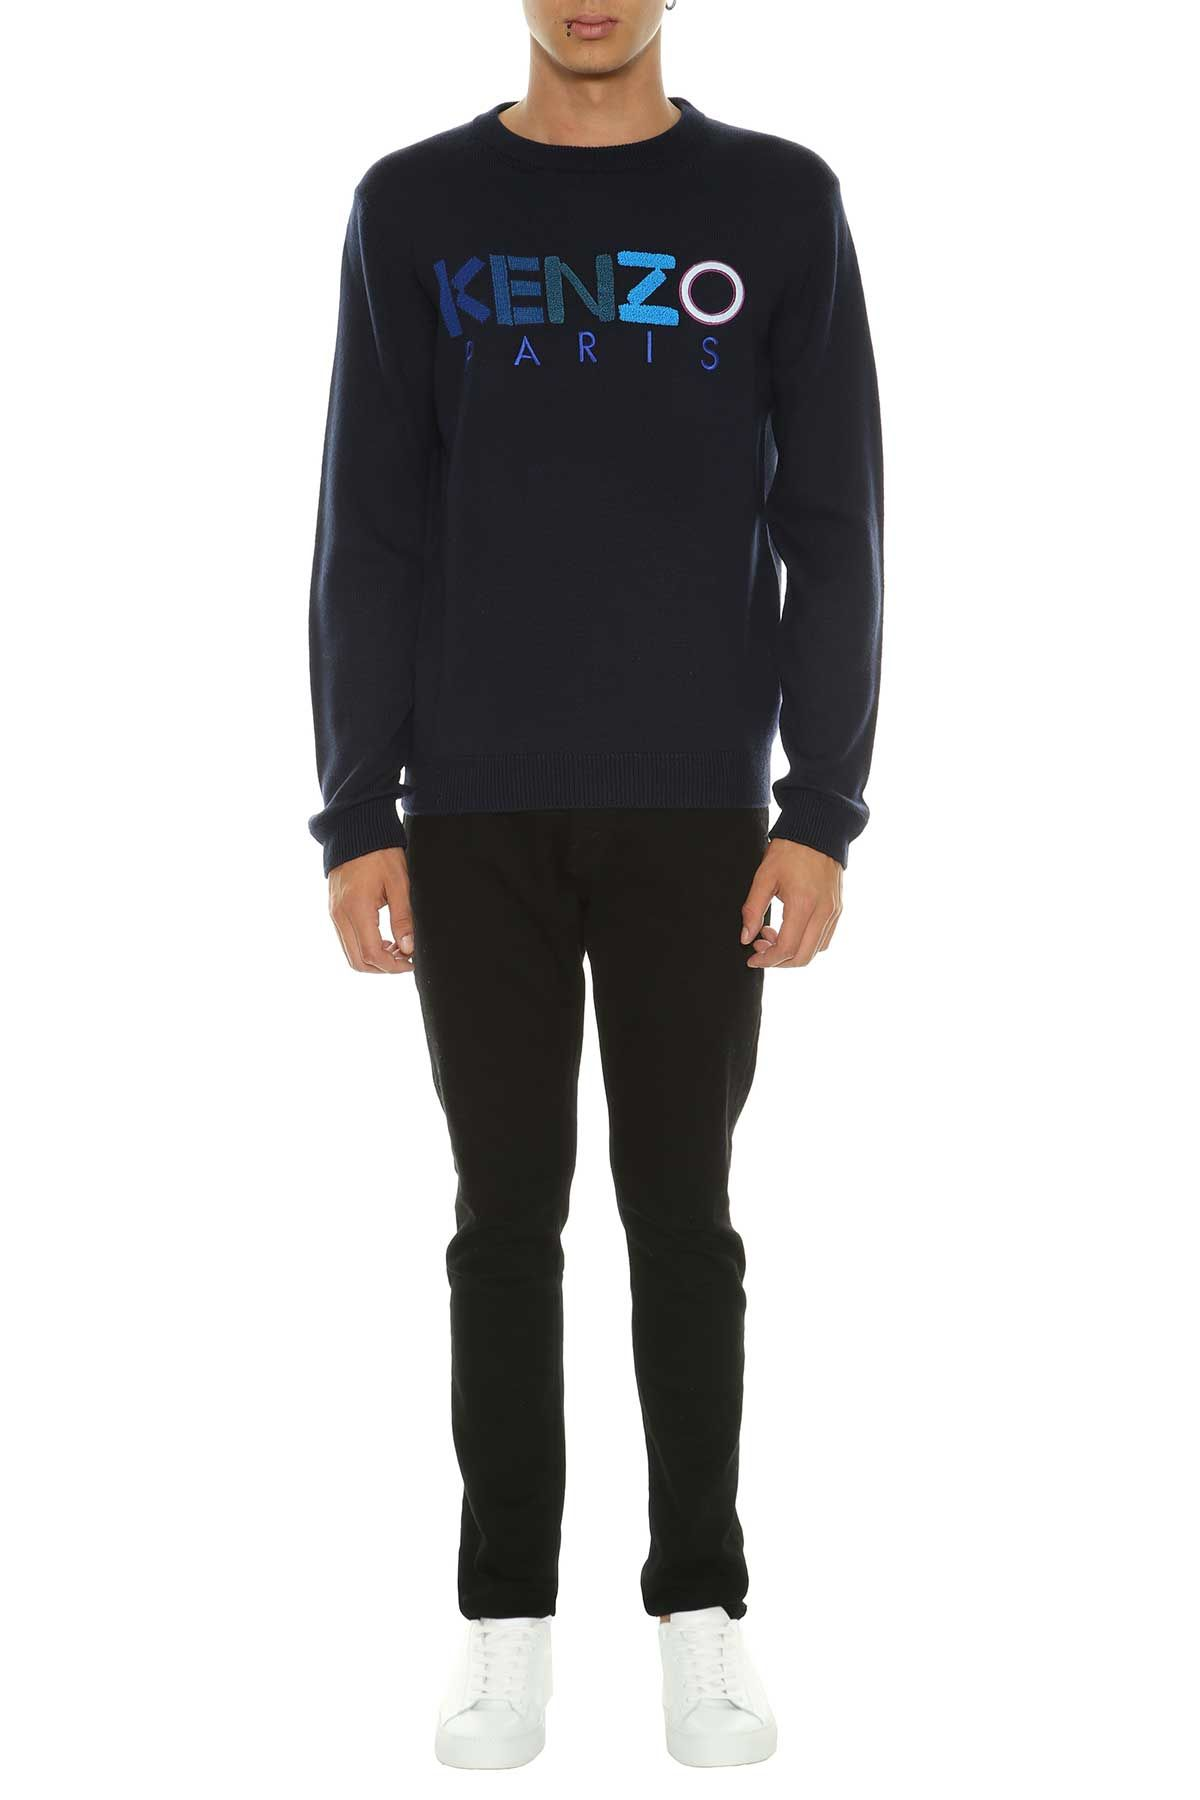 kenzo kenzo sweater with logo marine men 39 s sweaters italist. Black Bedroom Furniture Sets. Home Design Ideas